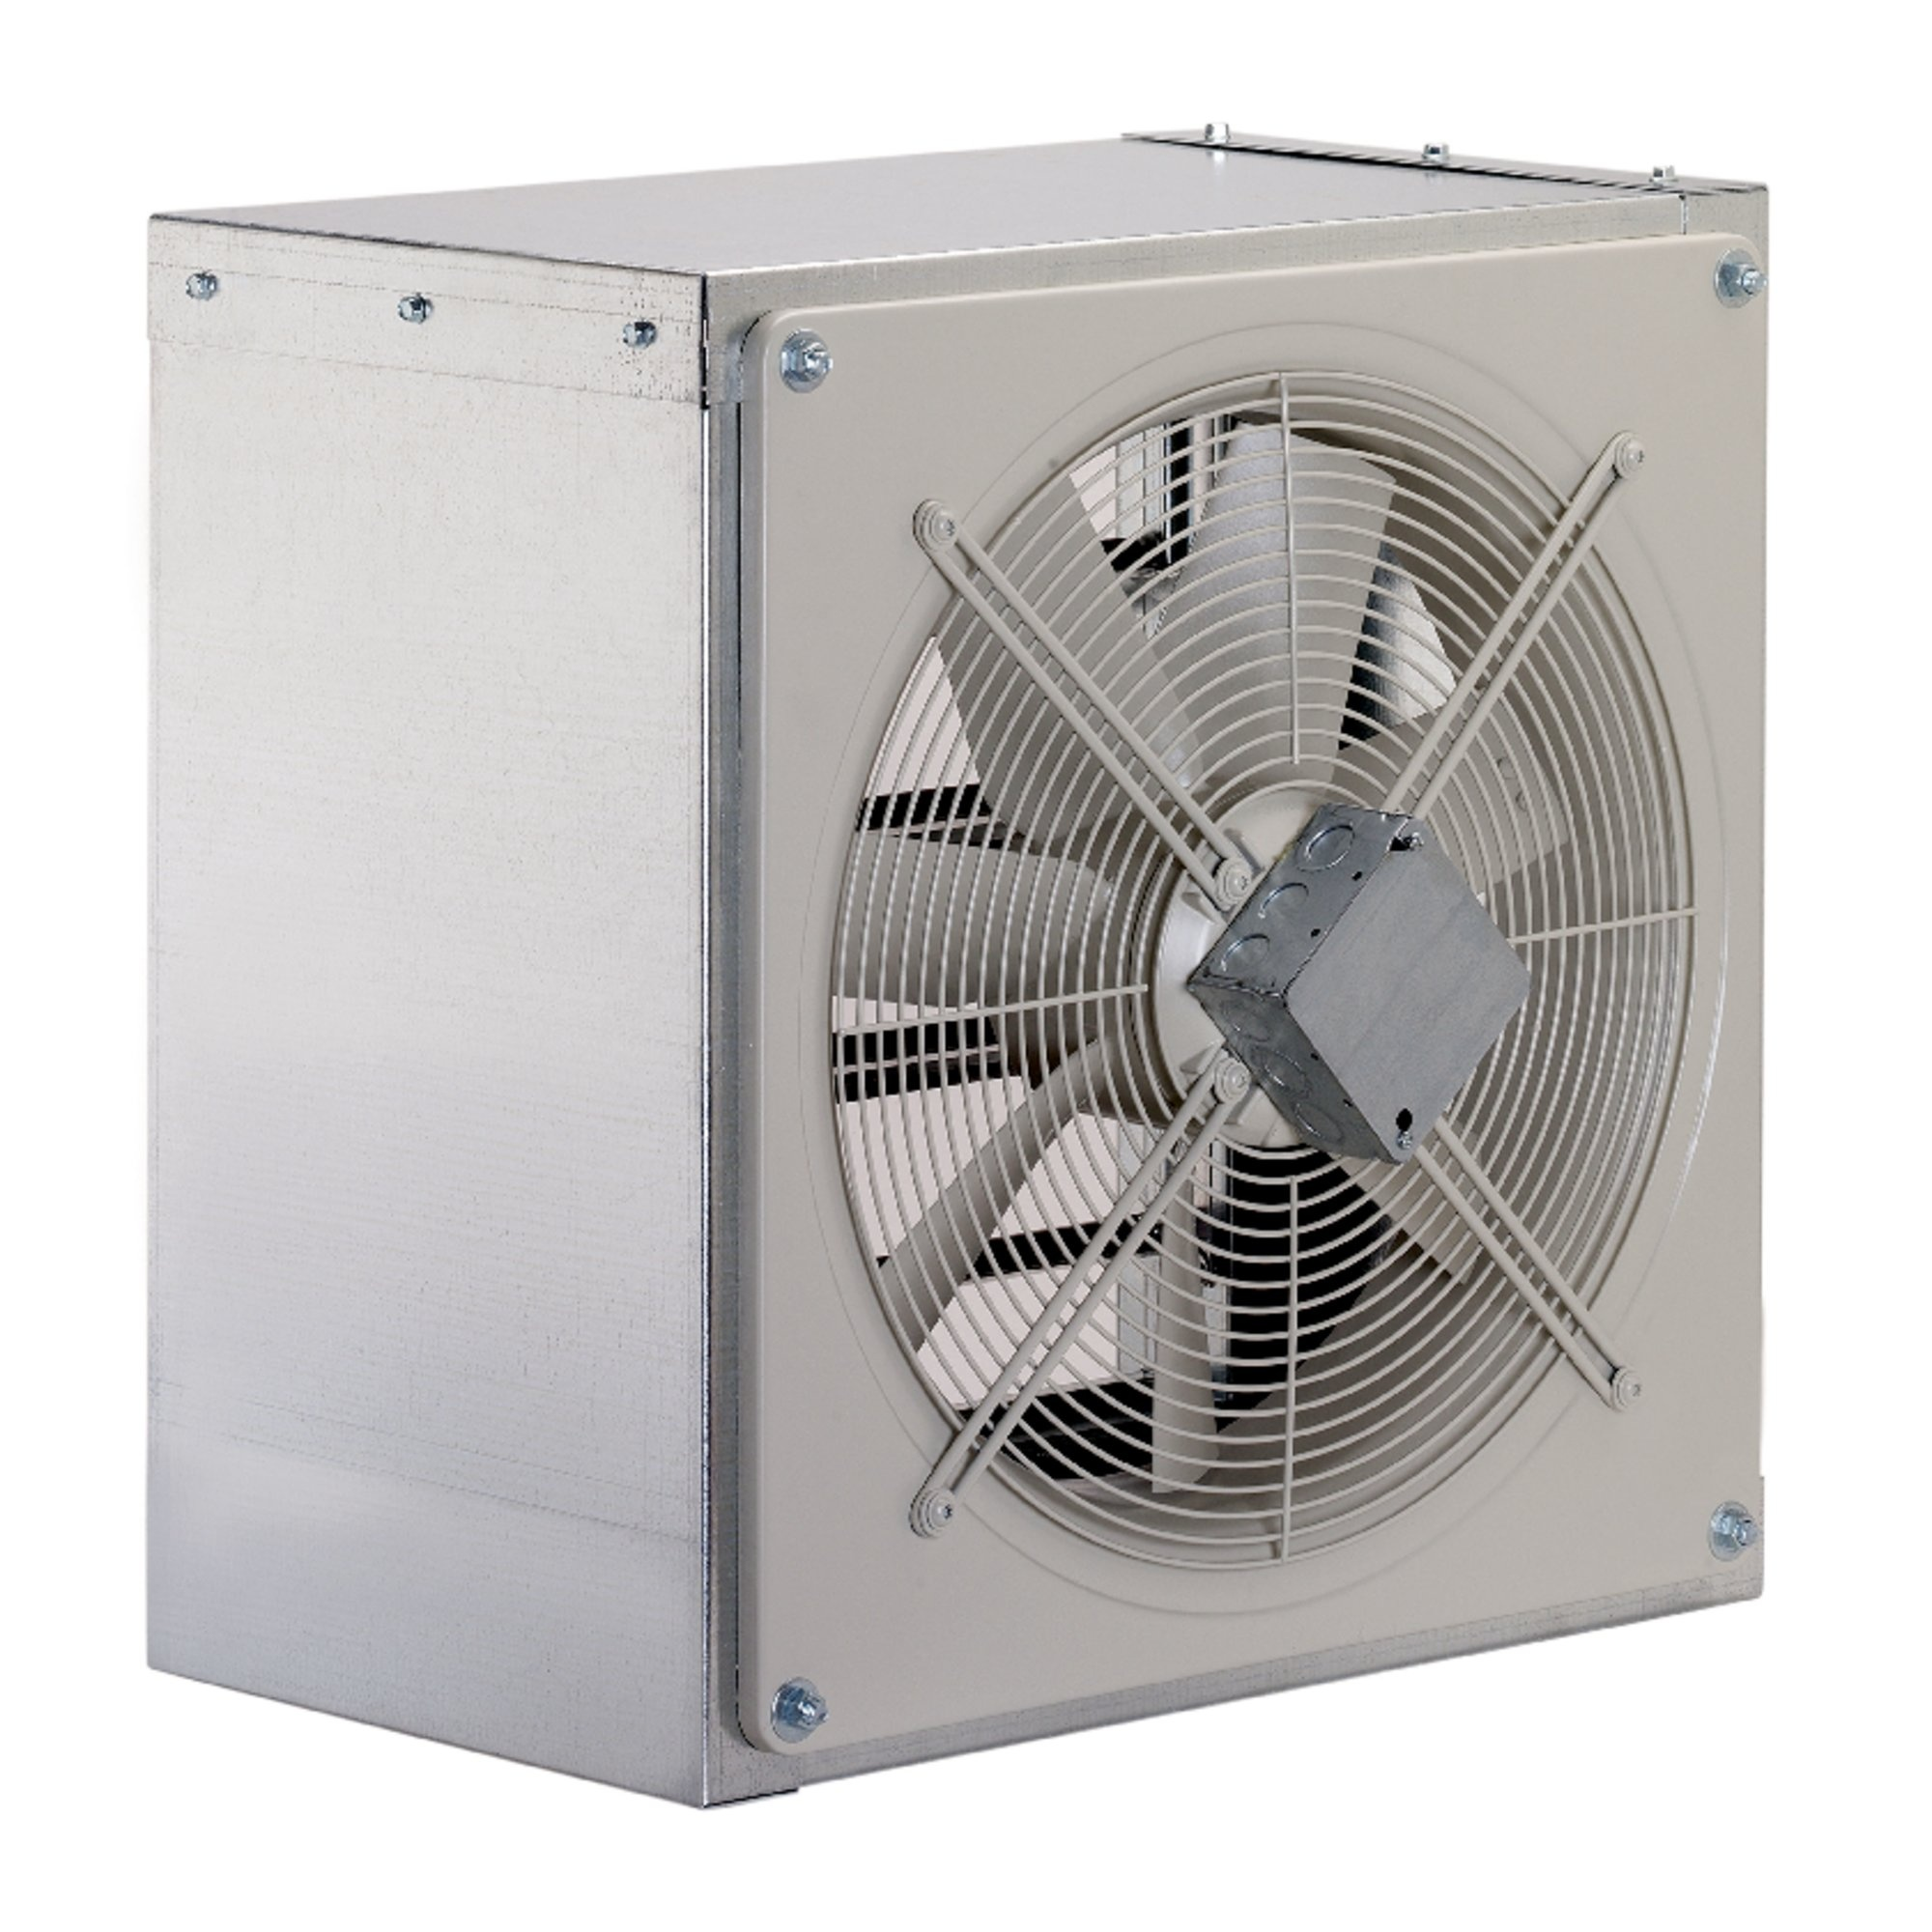 FADE 25-6 WHD Vent Axial - Montage en cabinet - Fantech